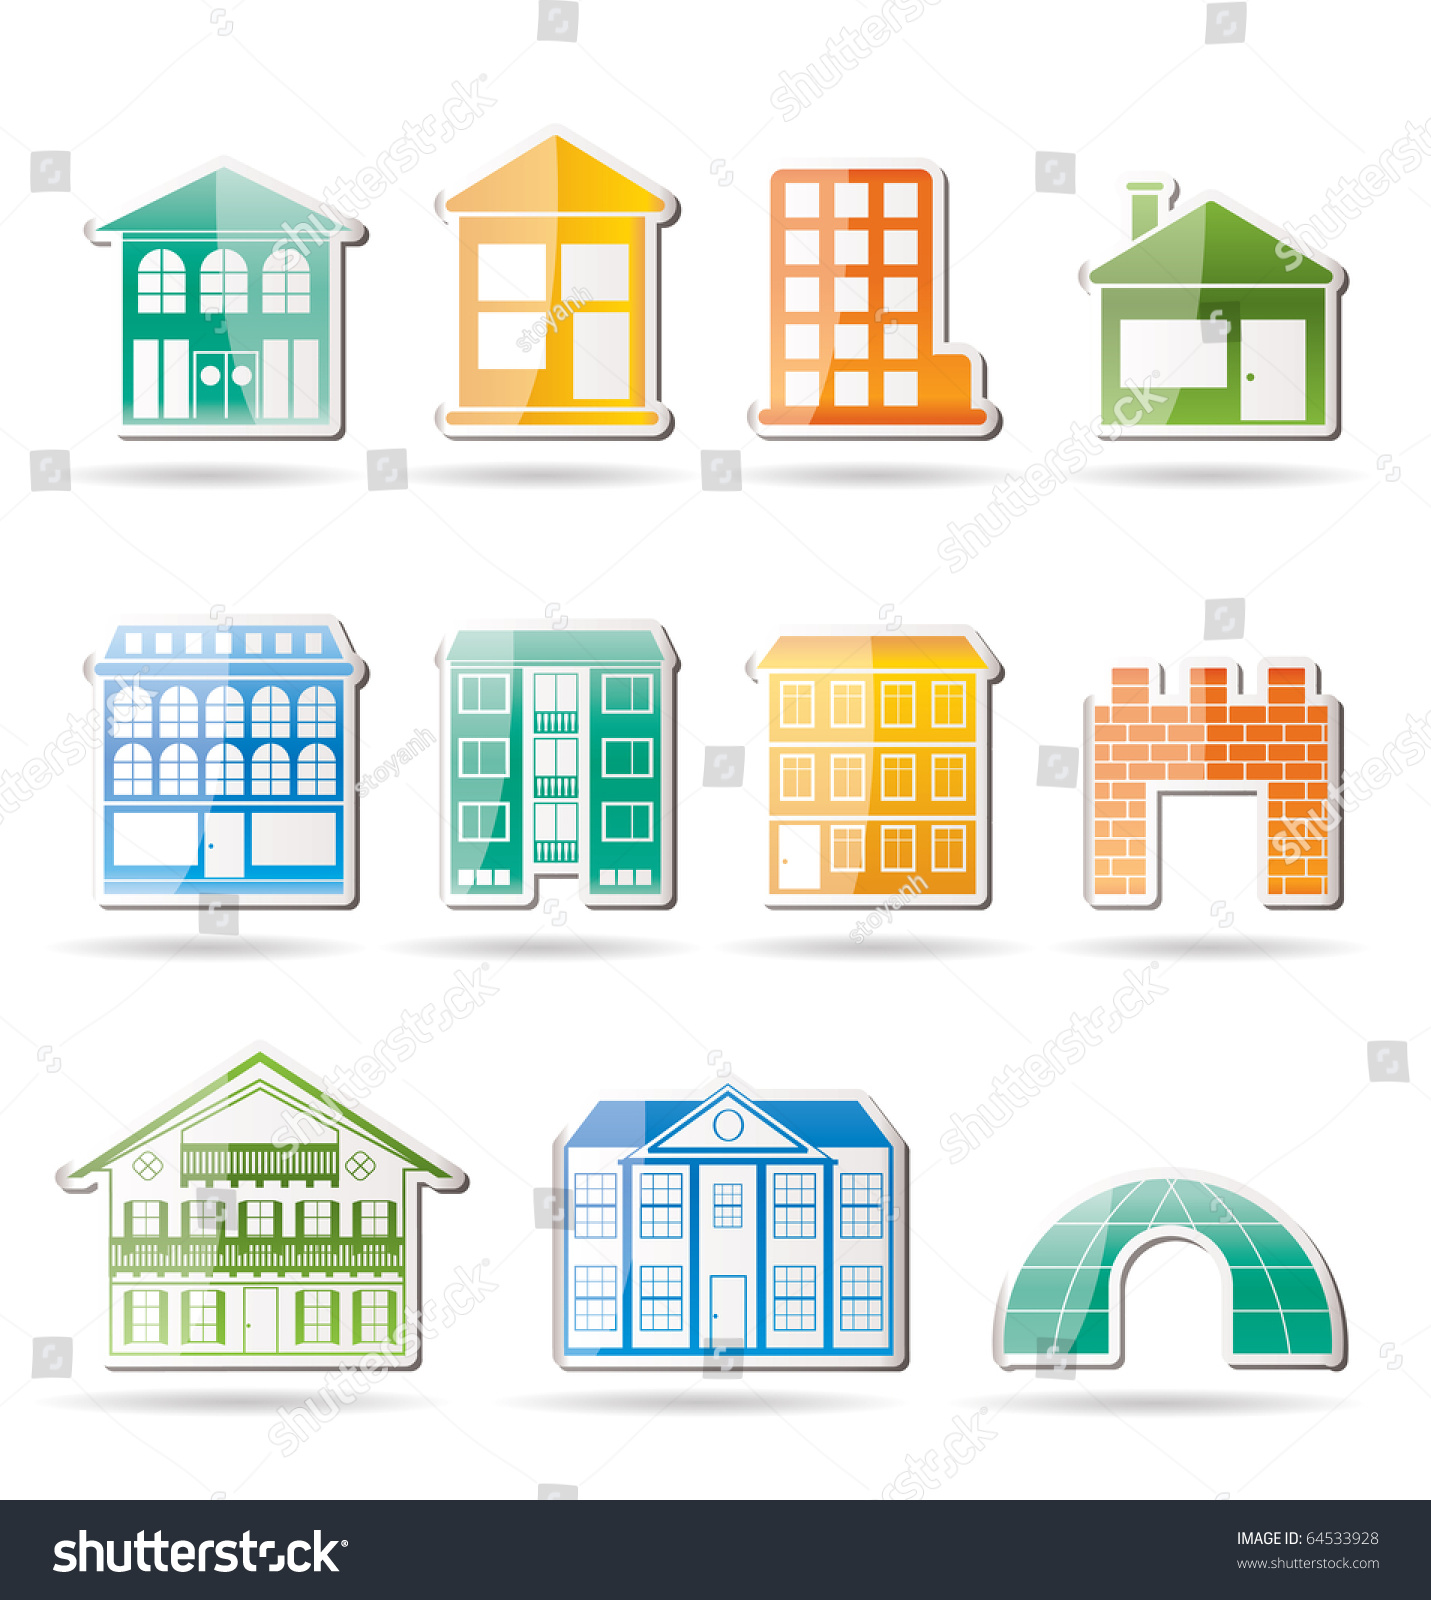 Different kinds houses buildings vector illustration stock for Different types of homes to build